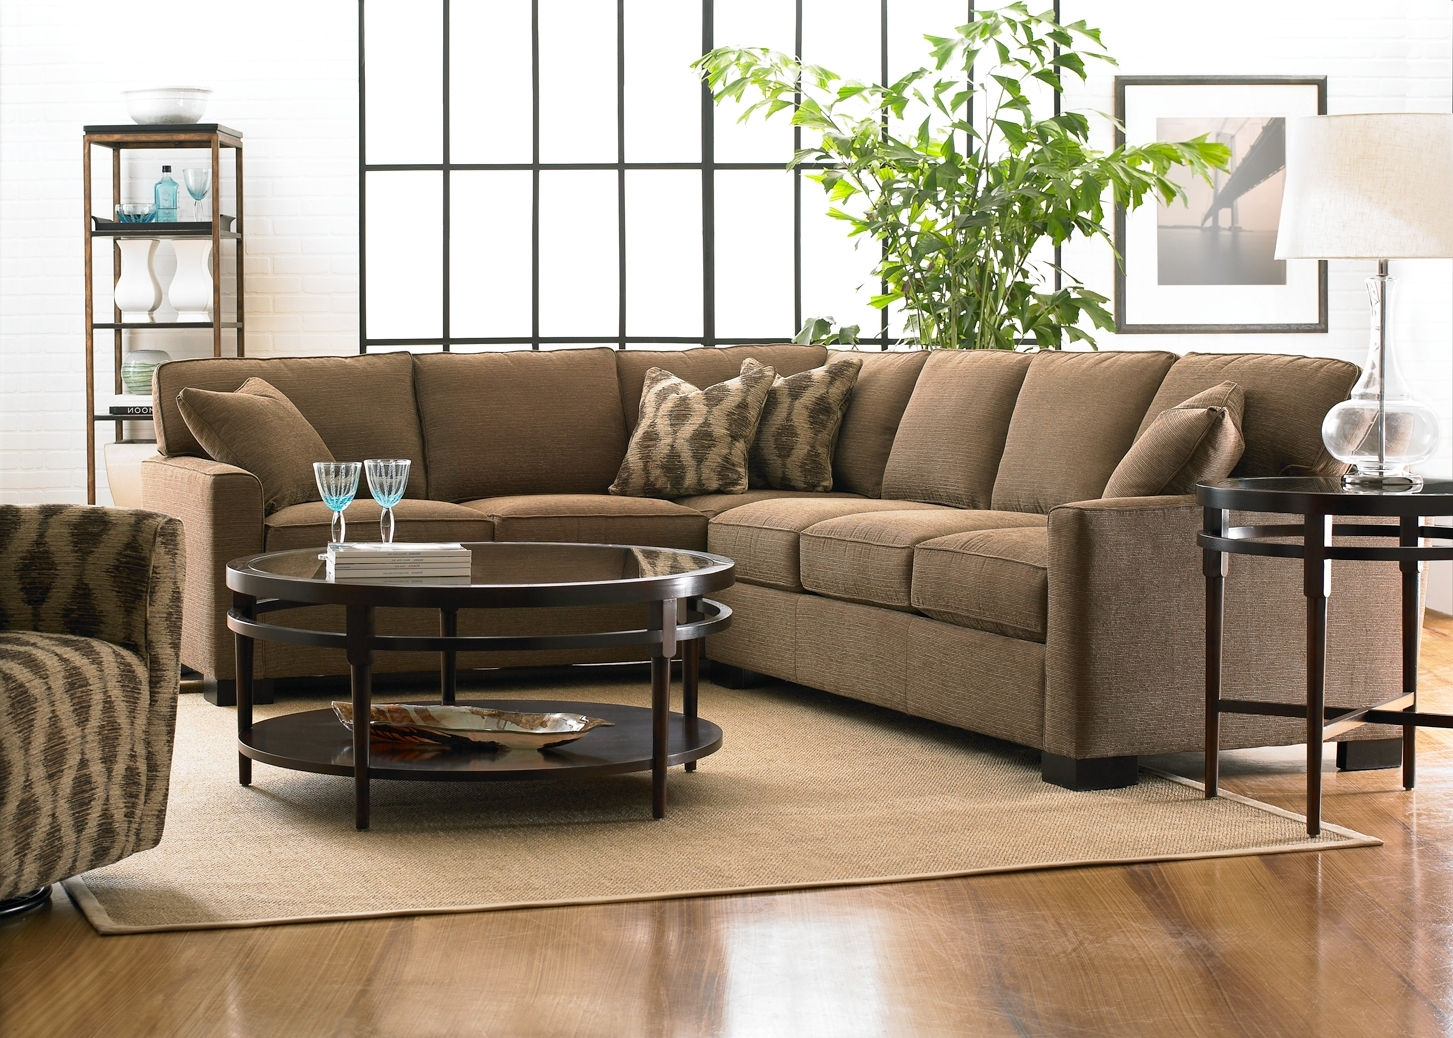 Favorite Sectional Sofas In Small Spaces With Regard To Reclining Sectional Sofas For Small Spaces (View 12 of 15)